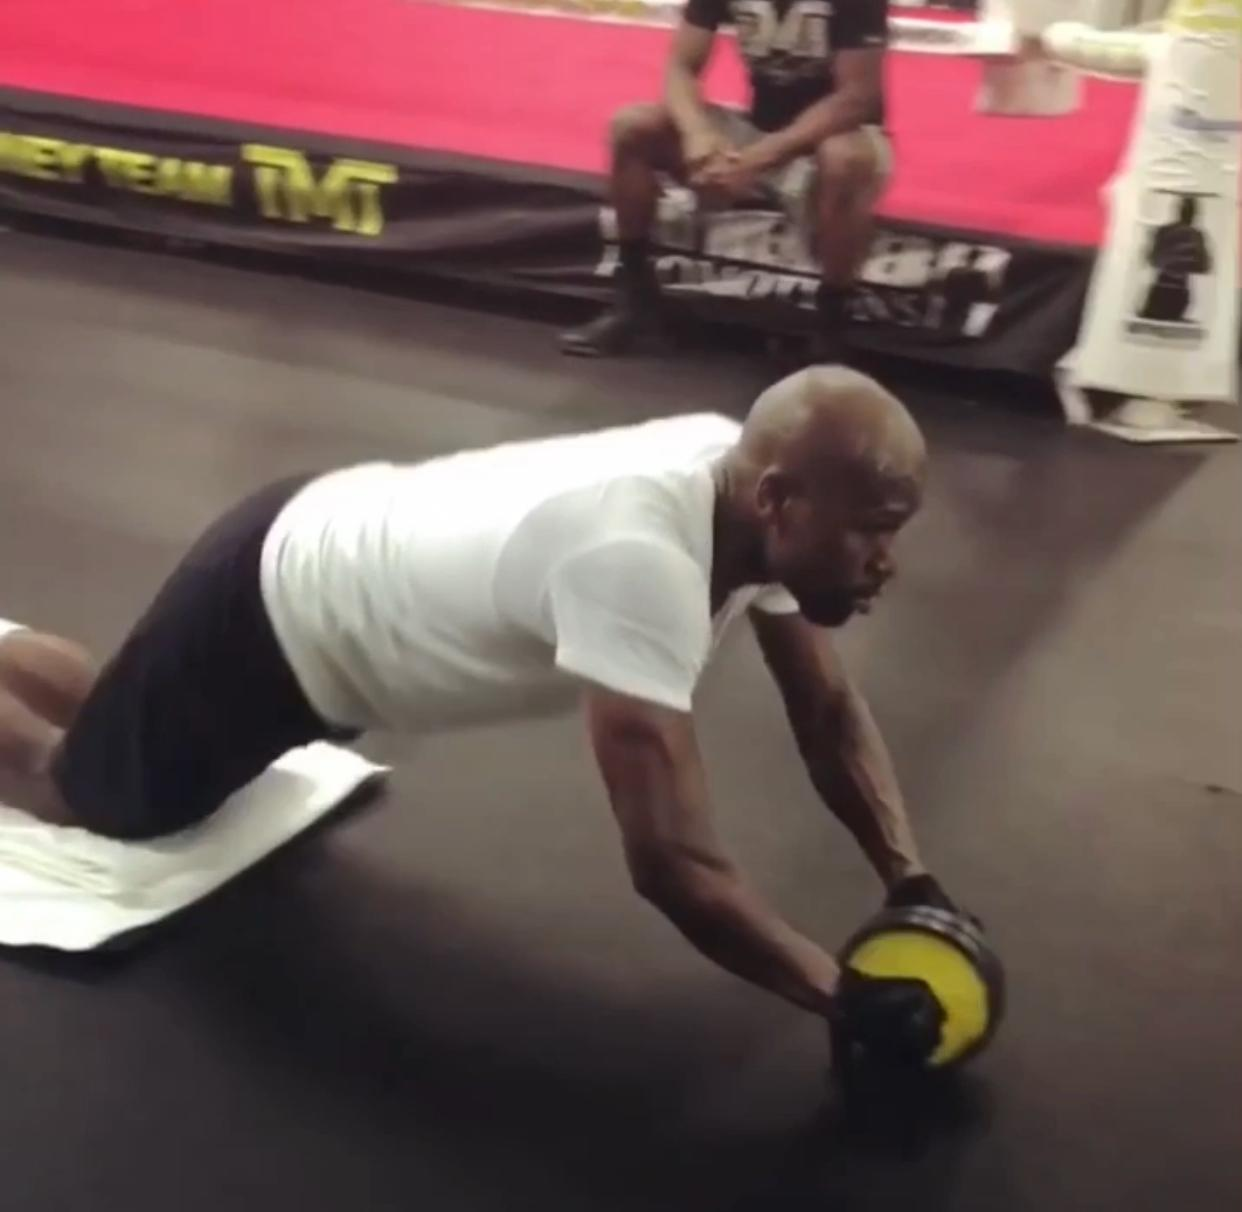 Floyd Mayweather is aiming to make his MMA bow this year, at featherweight